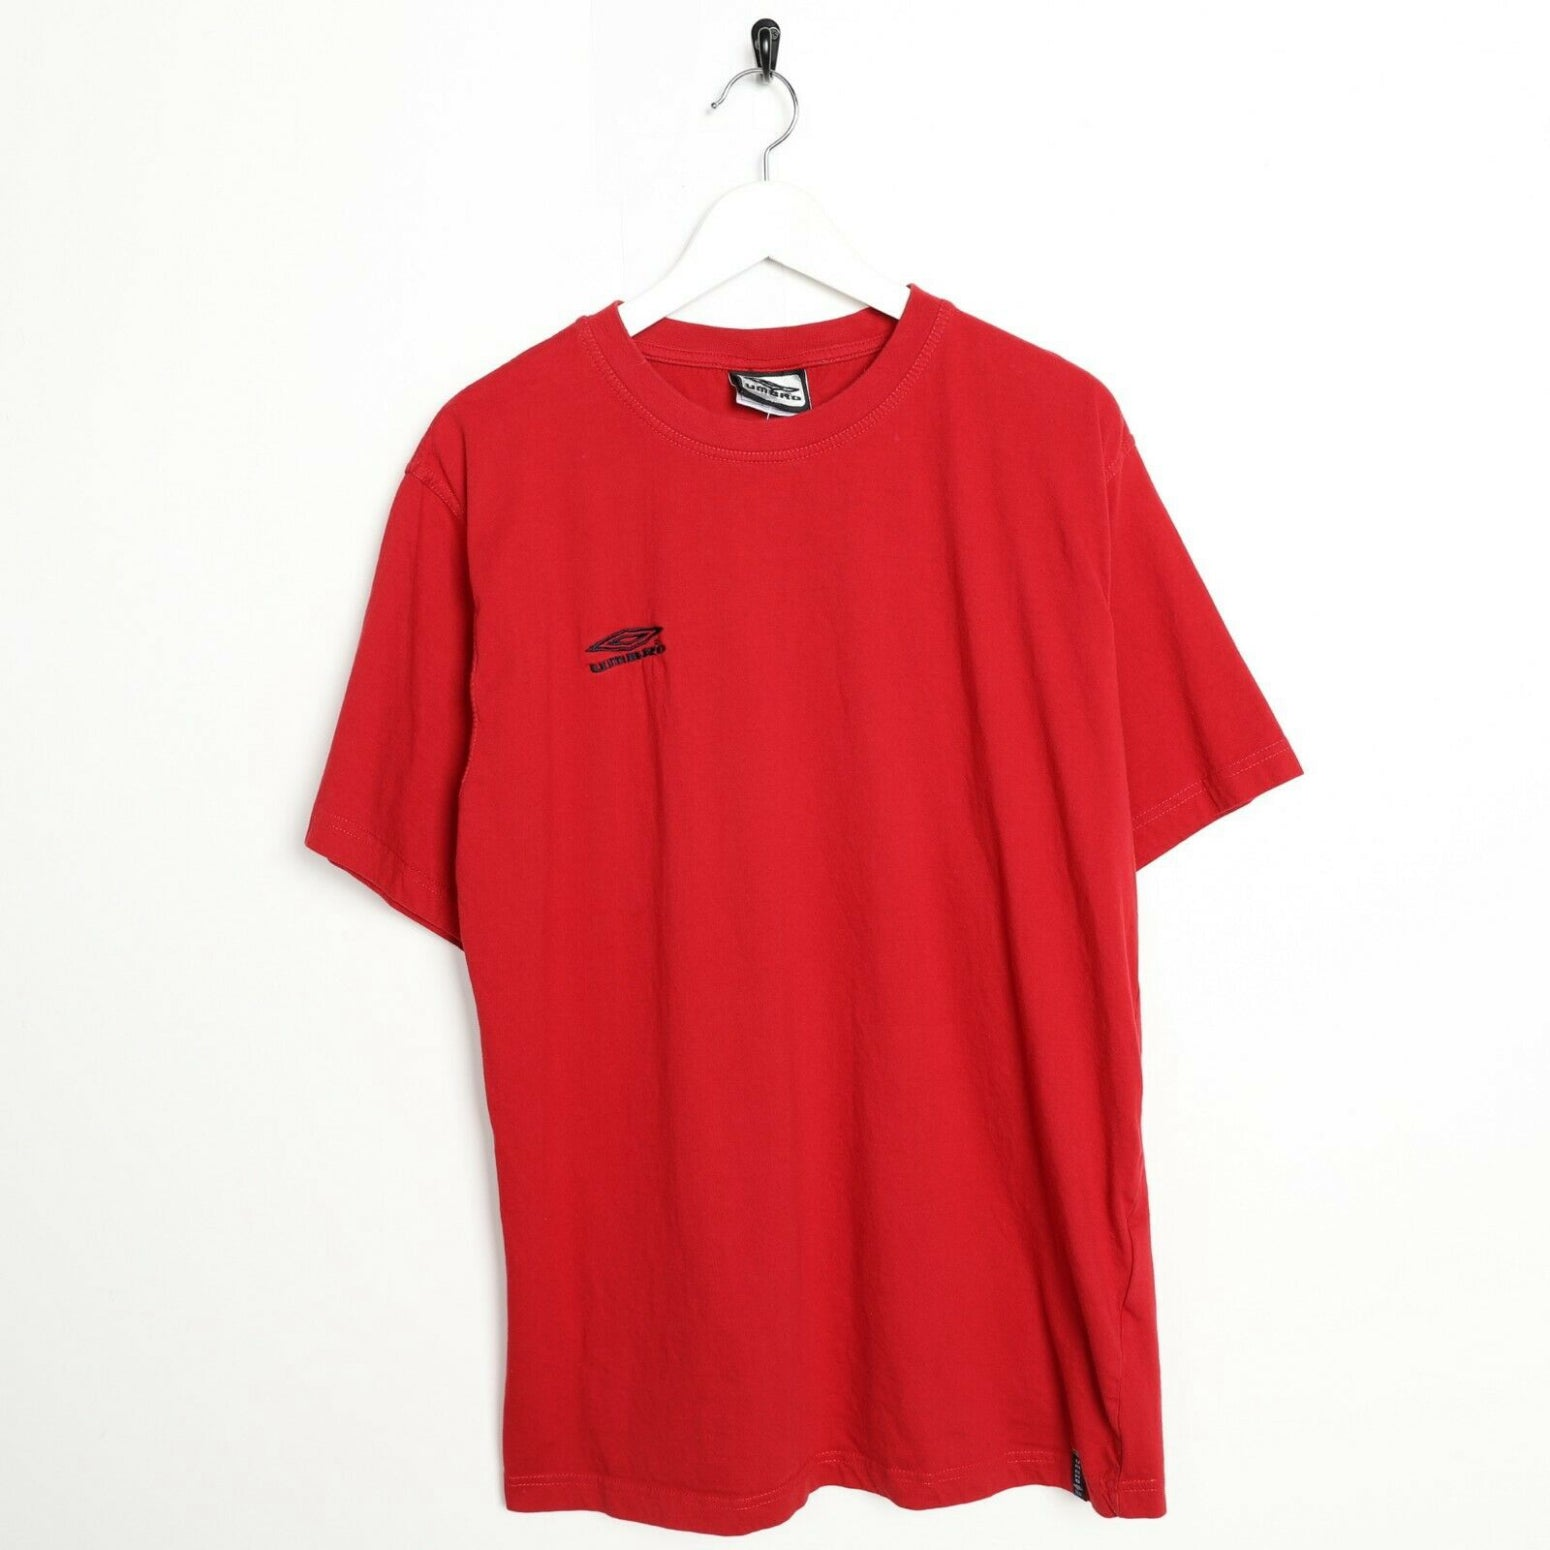 Vintage 90s UMBRO Small Logo T Shirt Tee Red XL